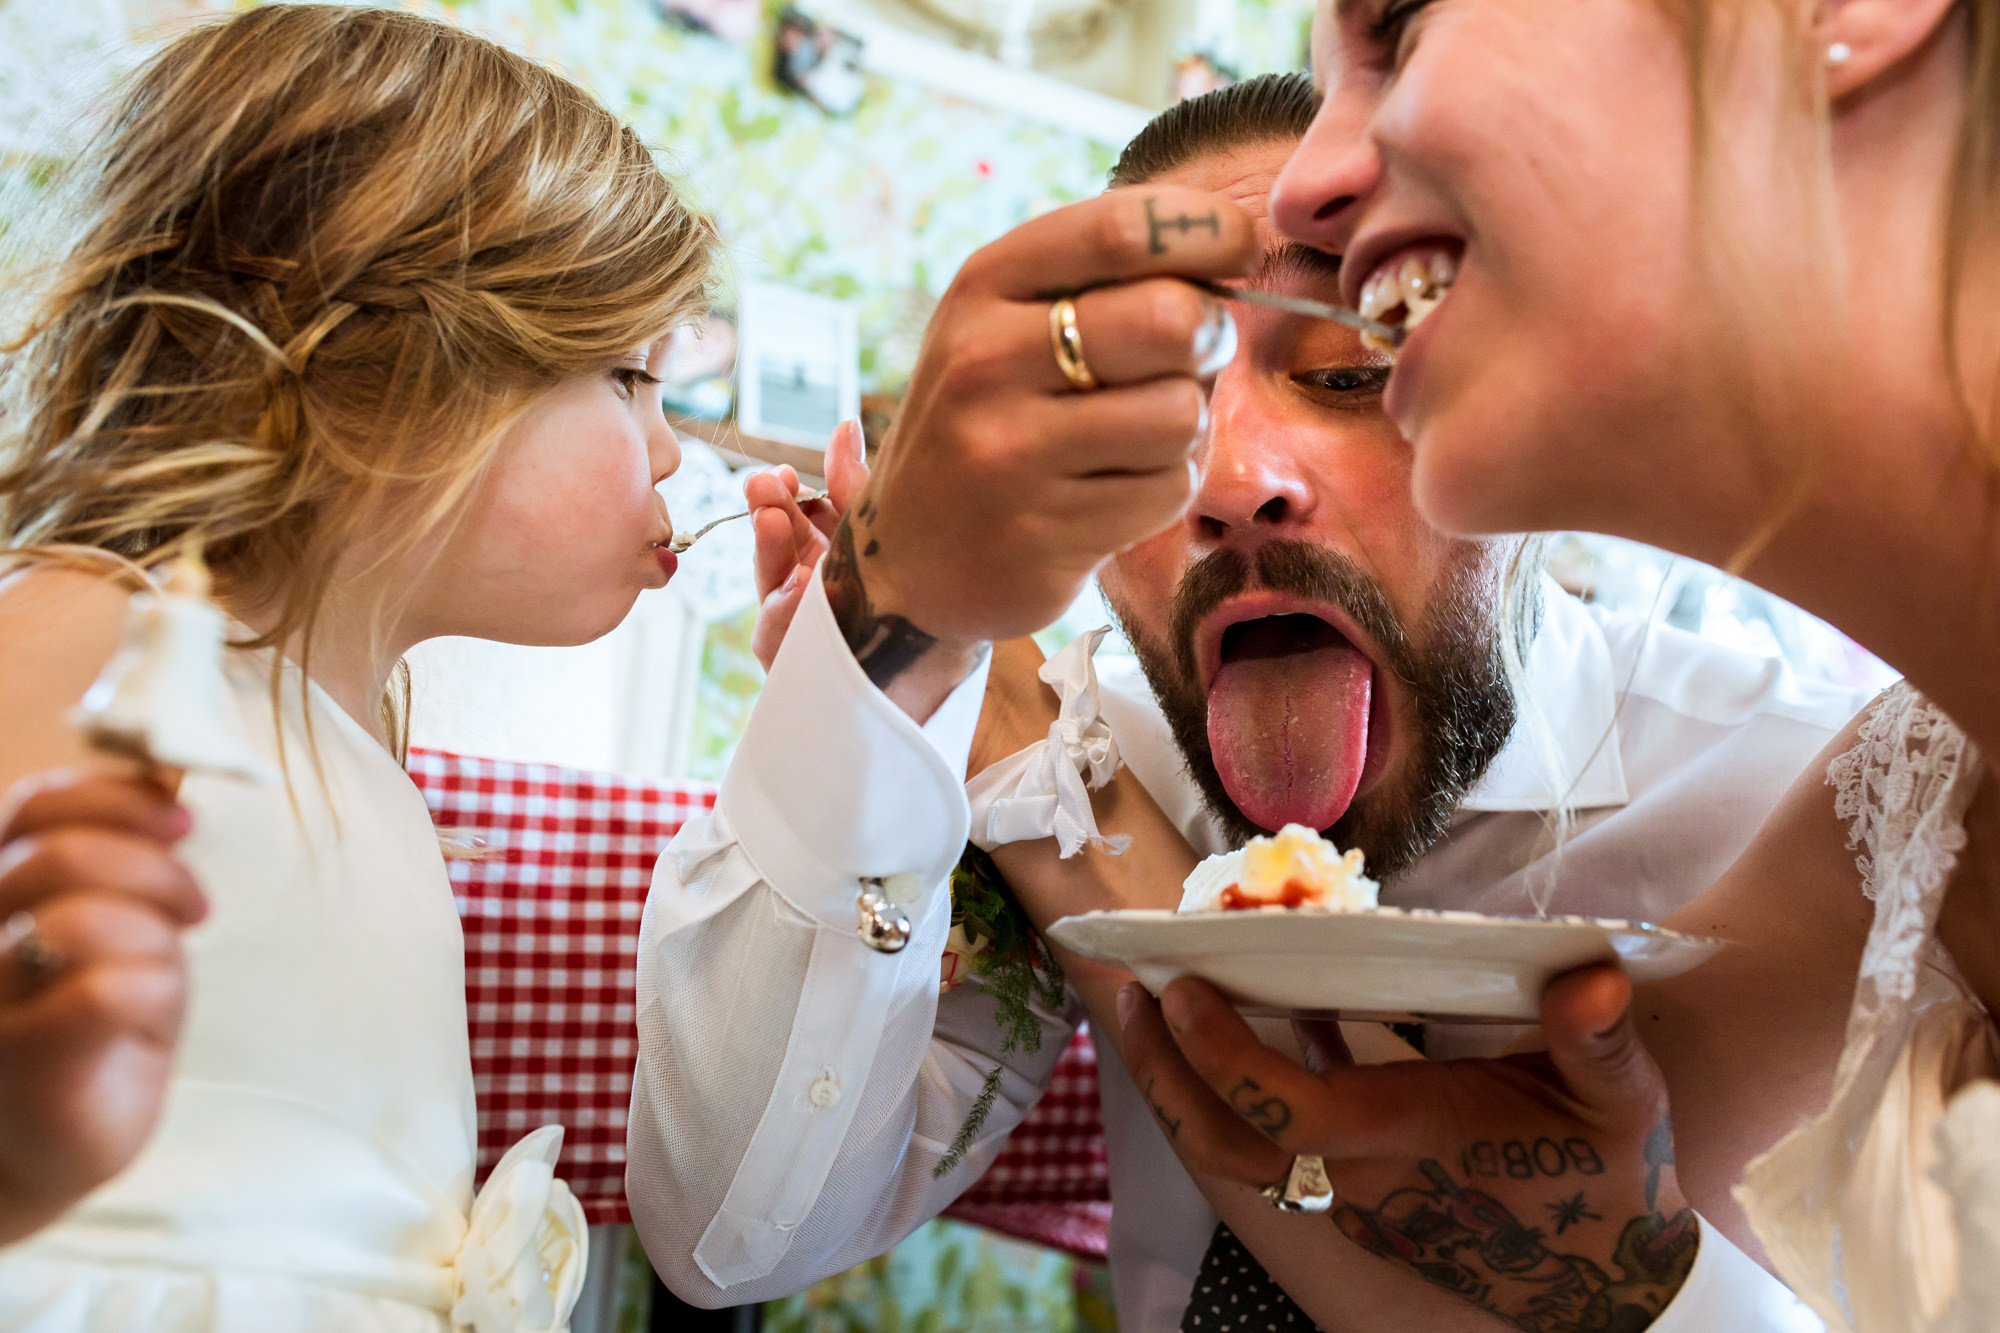 Layered shot of bride, groom and child eating cake photo by Fotobelle: Isabelle Hattink